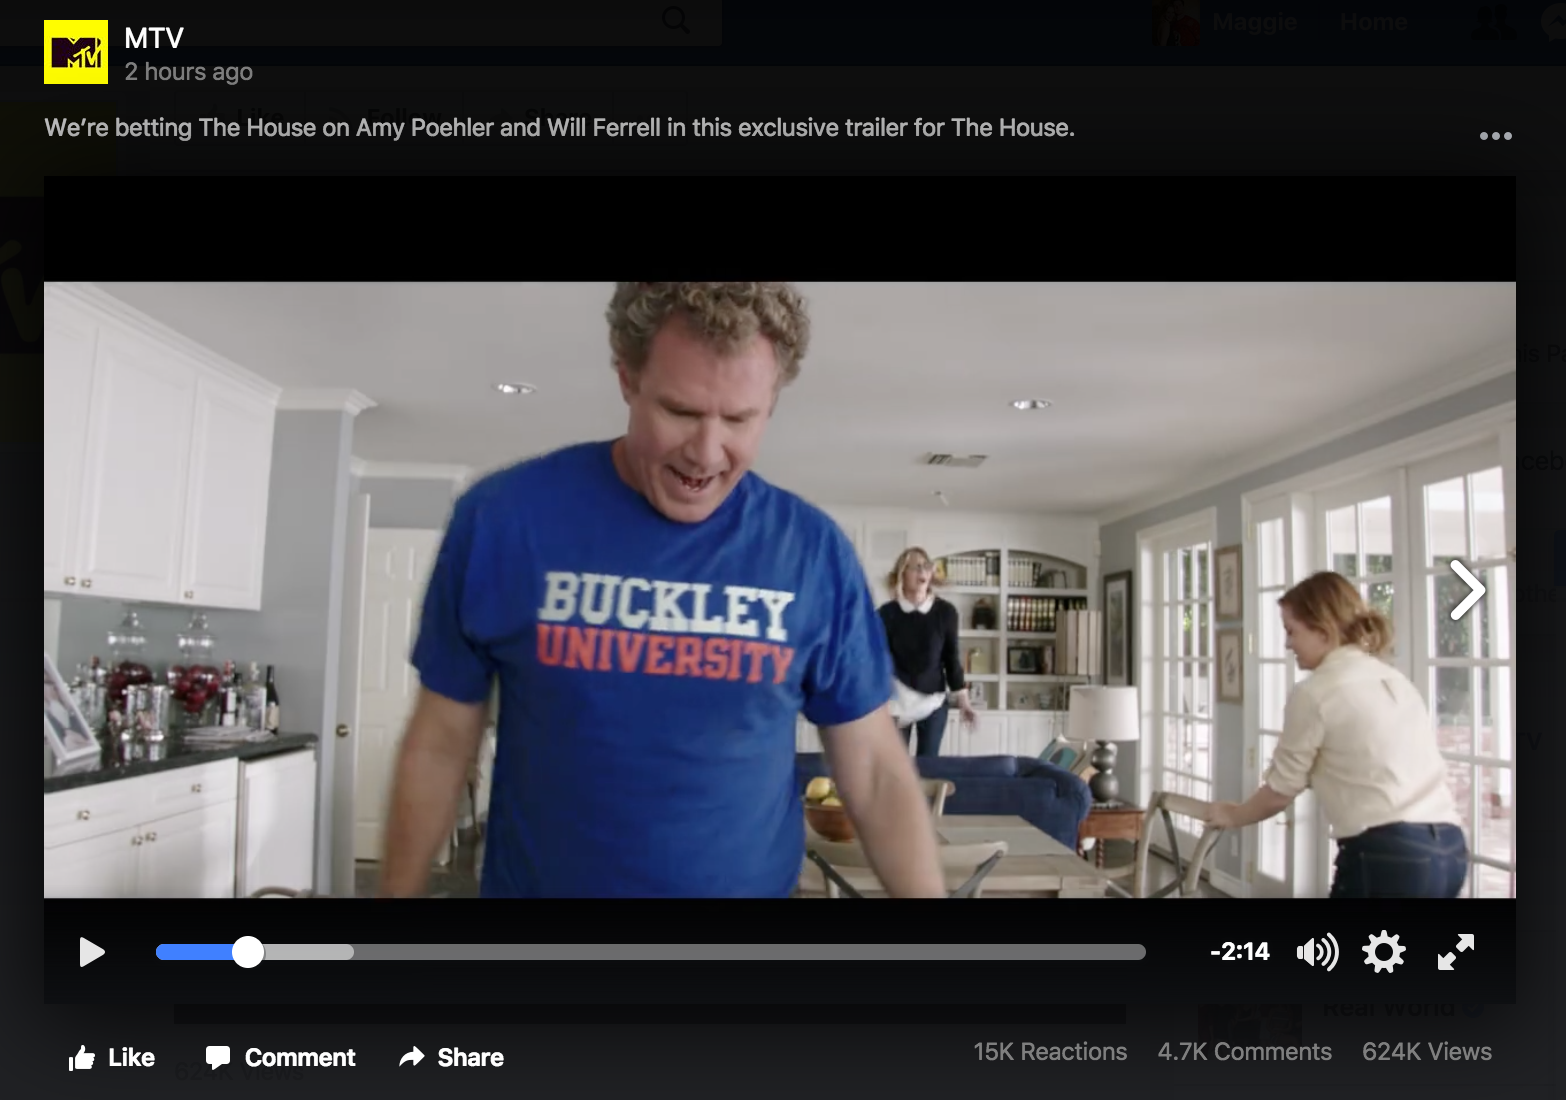 Will Ferrell and Amy Poehler's new movie has totally ripped off Bucknell's logo